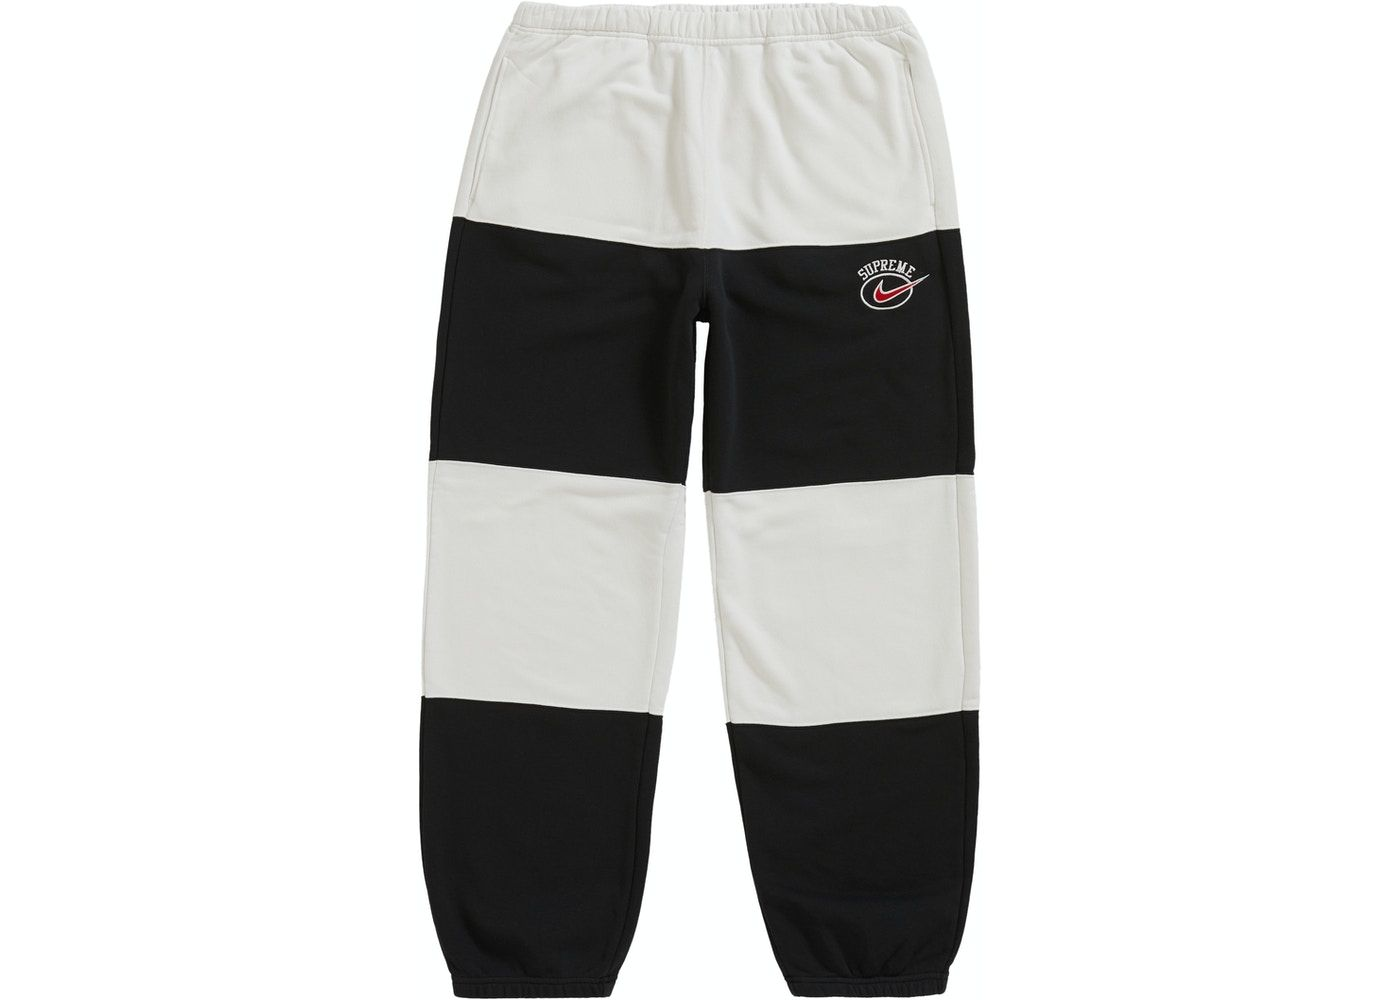 Supreme Nike Stripe Sweatpant Black In 2021 Cute Sweatpants Outfit Air Force Ones Outfits School Leggings Outfit [ 1000 x 1400 Pixel ]